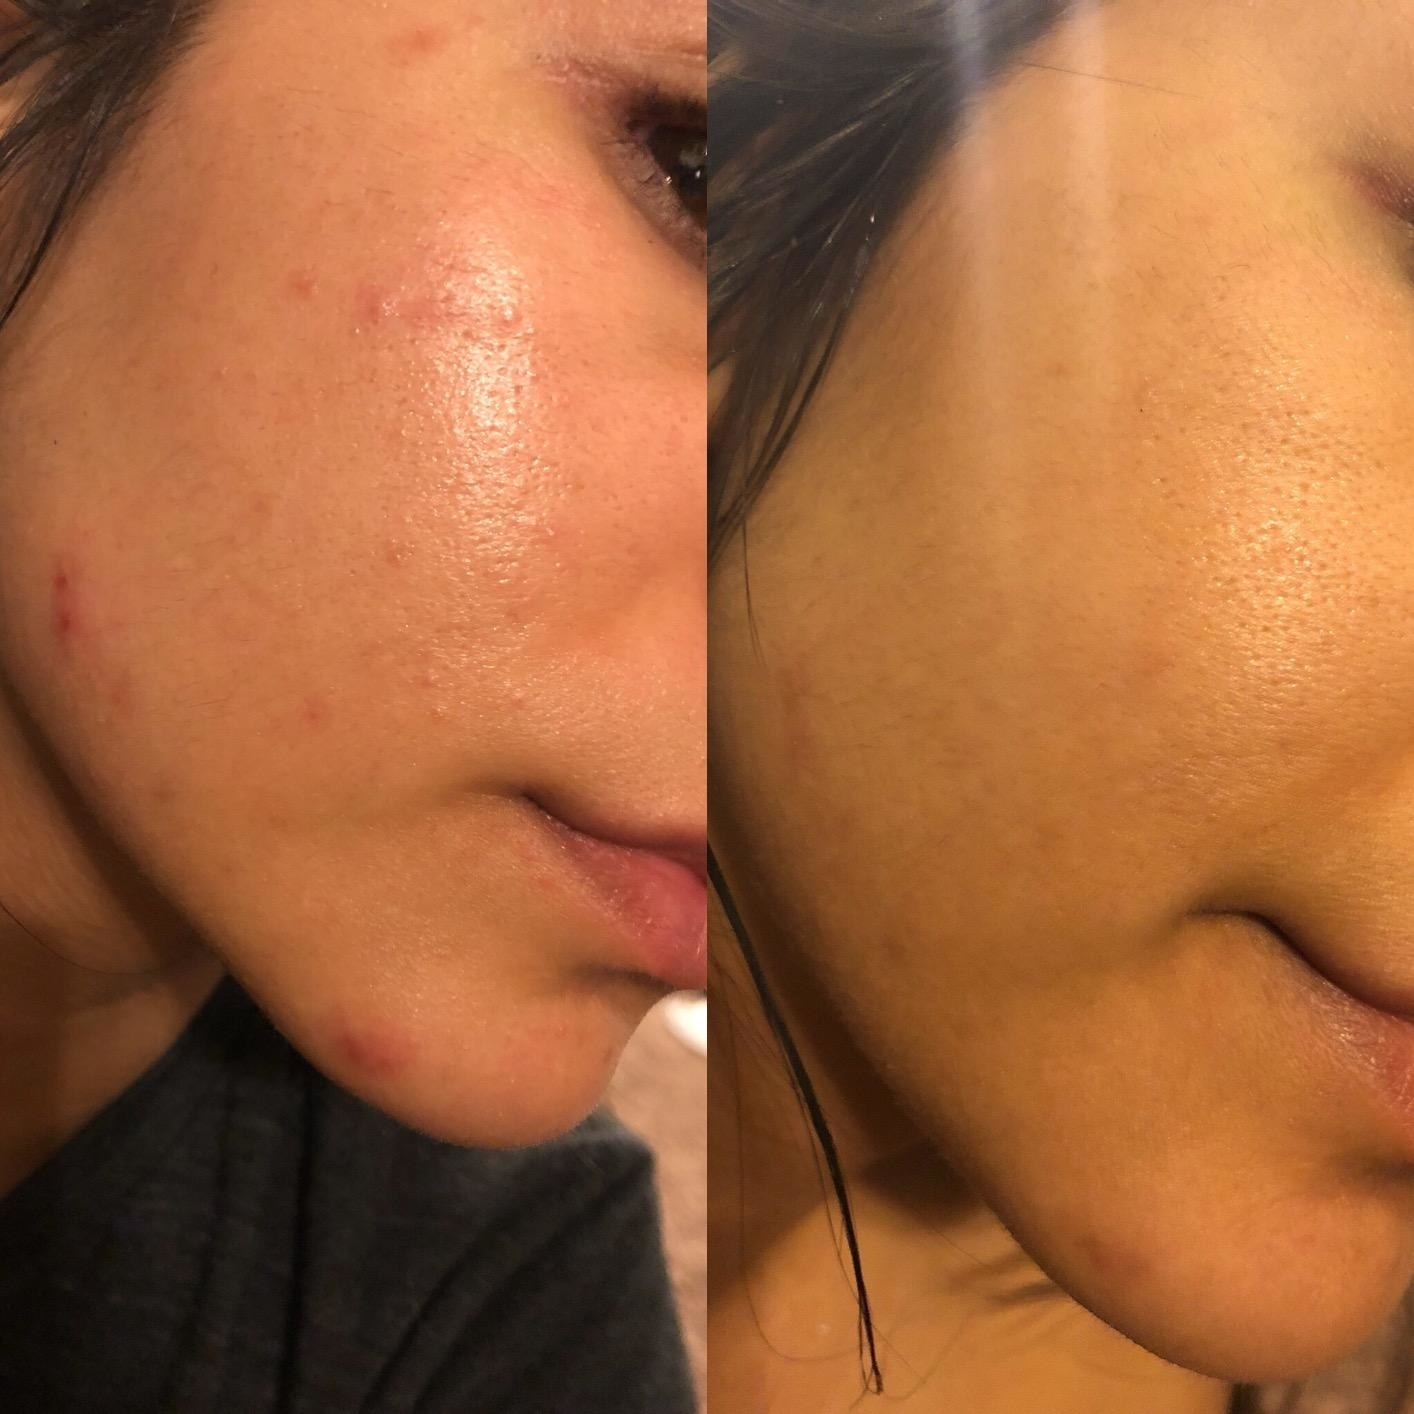 A reviewer's cheeks: before with some bumps and acne and after clear and glowing